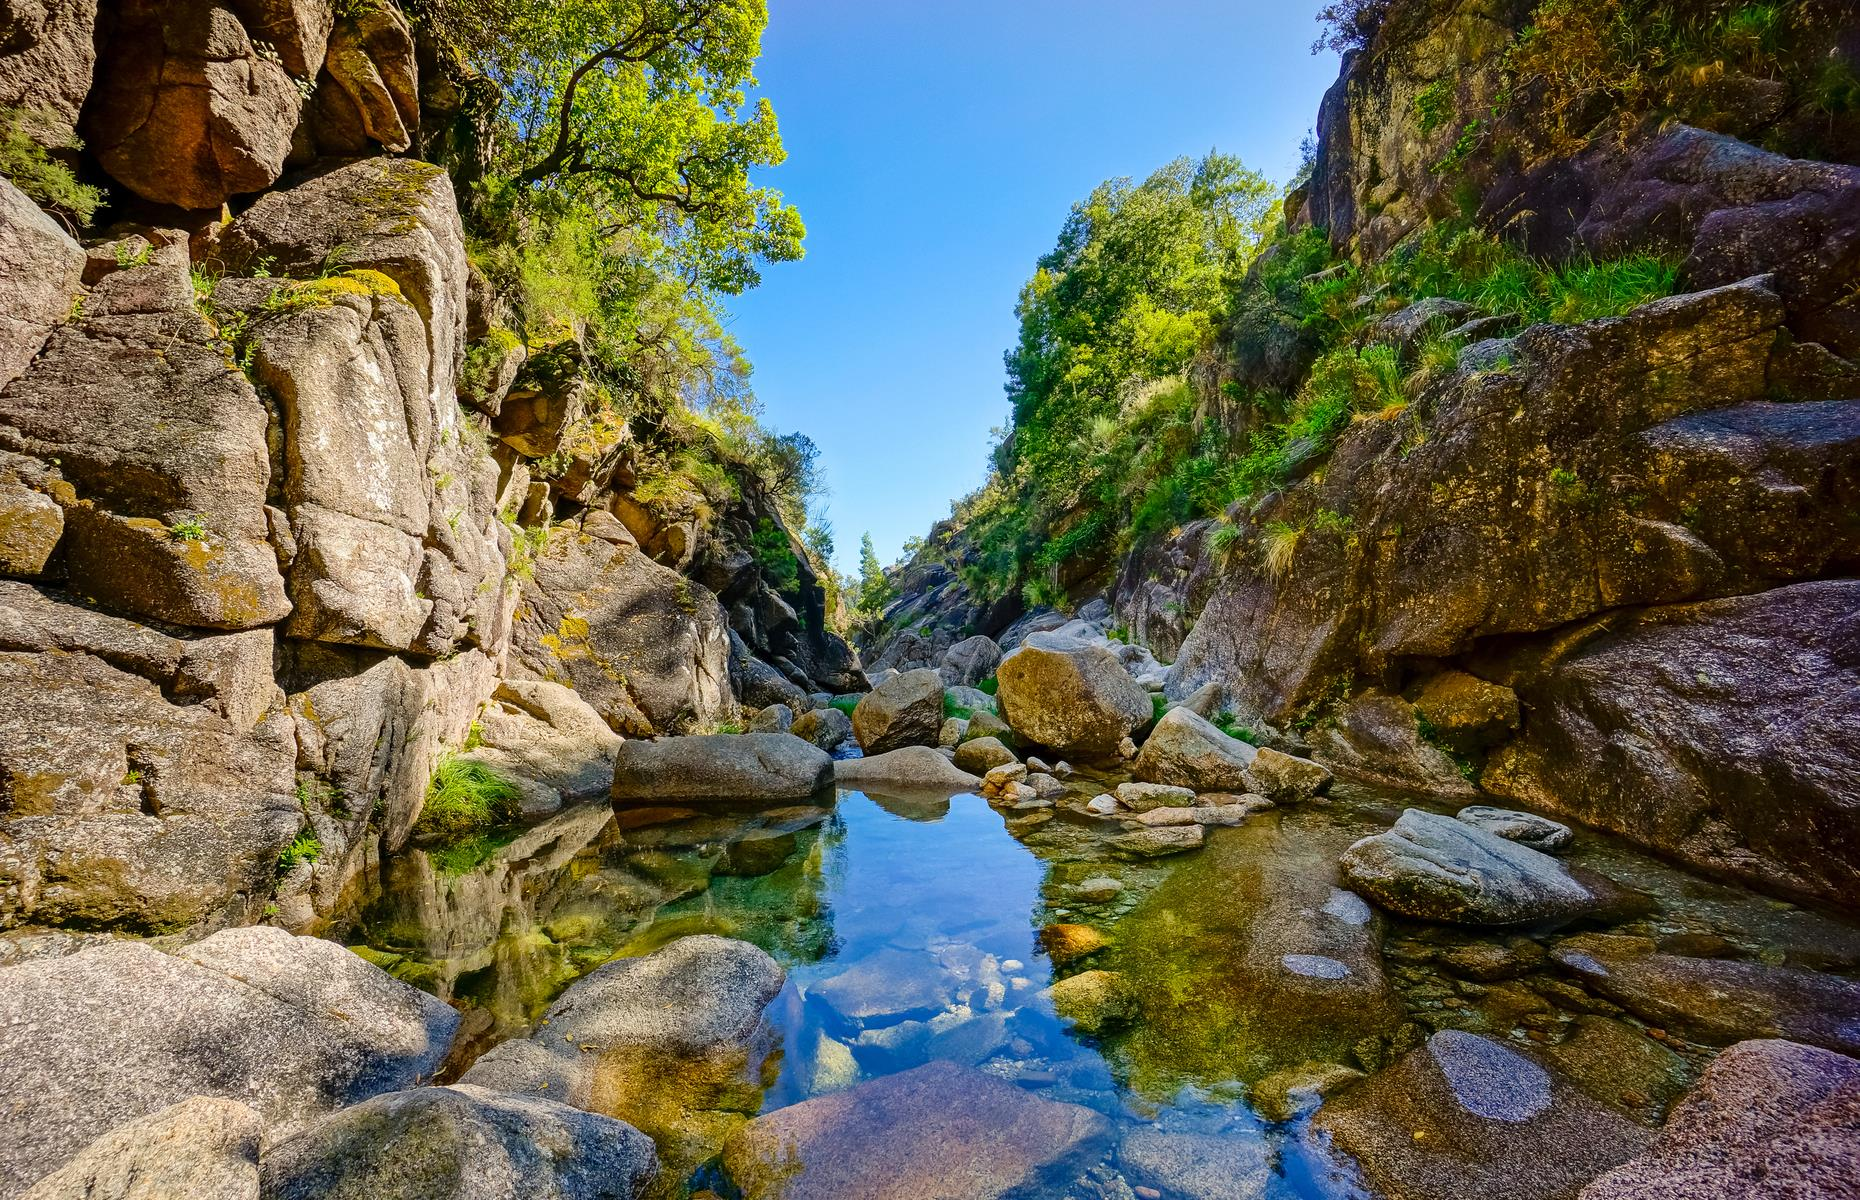 Slide 20 of 31: In northern Portugal near the Spanish border lies the 271-square-mile (702sq km) Peneda-Gerês National Park, full of vast, stony landscapes, oak forests and glimmering mountain creeks. Established in 1971, it's just over an hour's drive from the charming city of Porto. The rich array of wildlife includes wild ponies, wolves, otters, plus 15 species of bat (including 10 that are endangered).